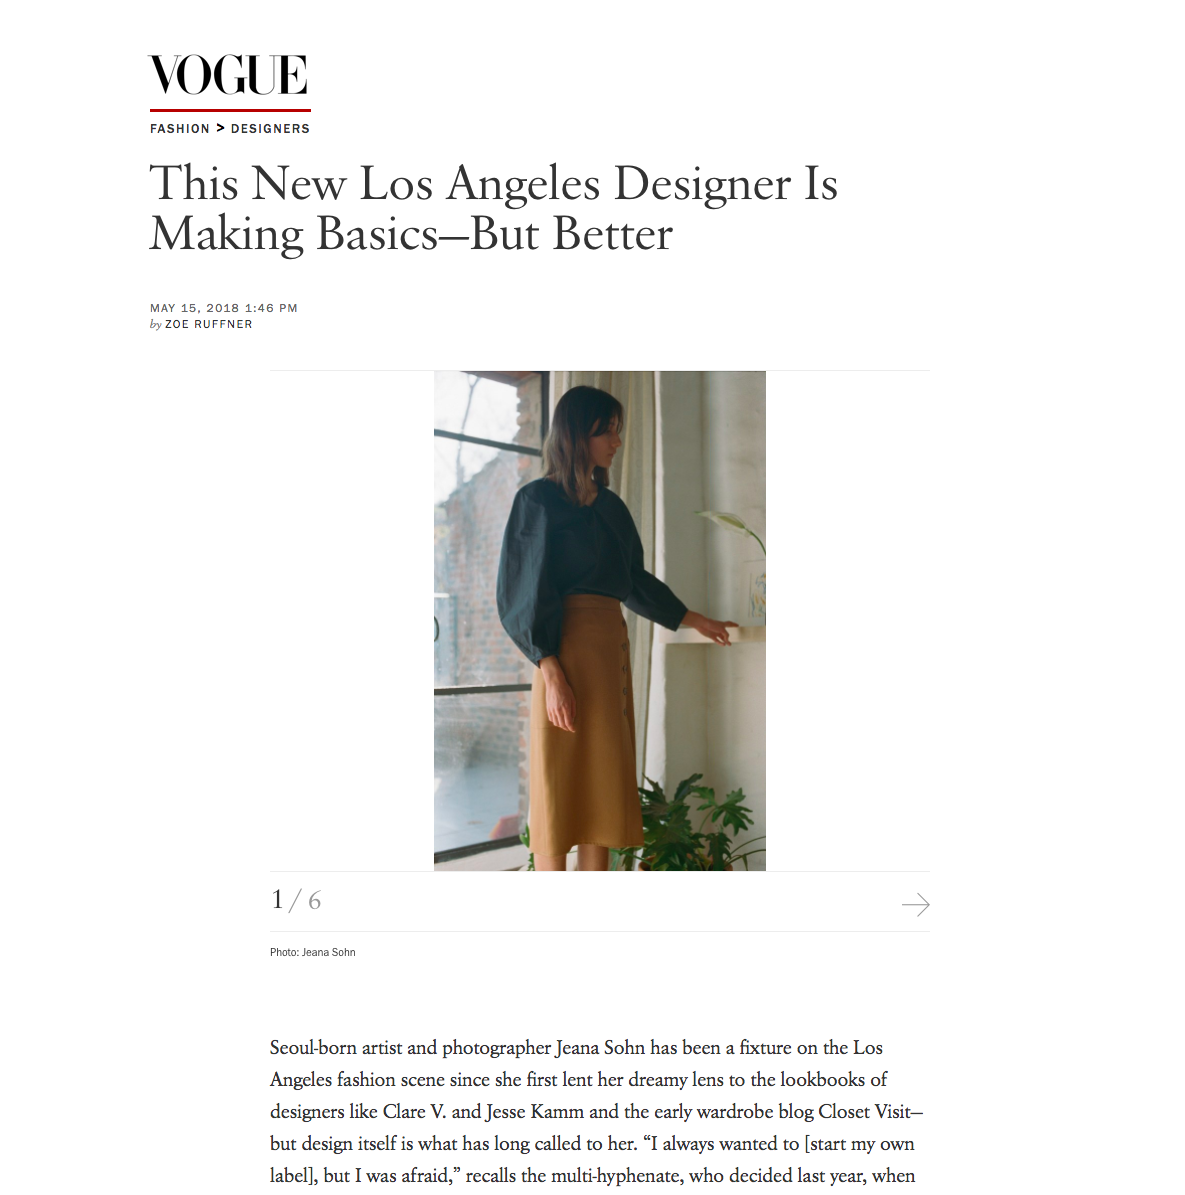 Vogue - This New Los Angeles Designer Is Making Basics - But Better